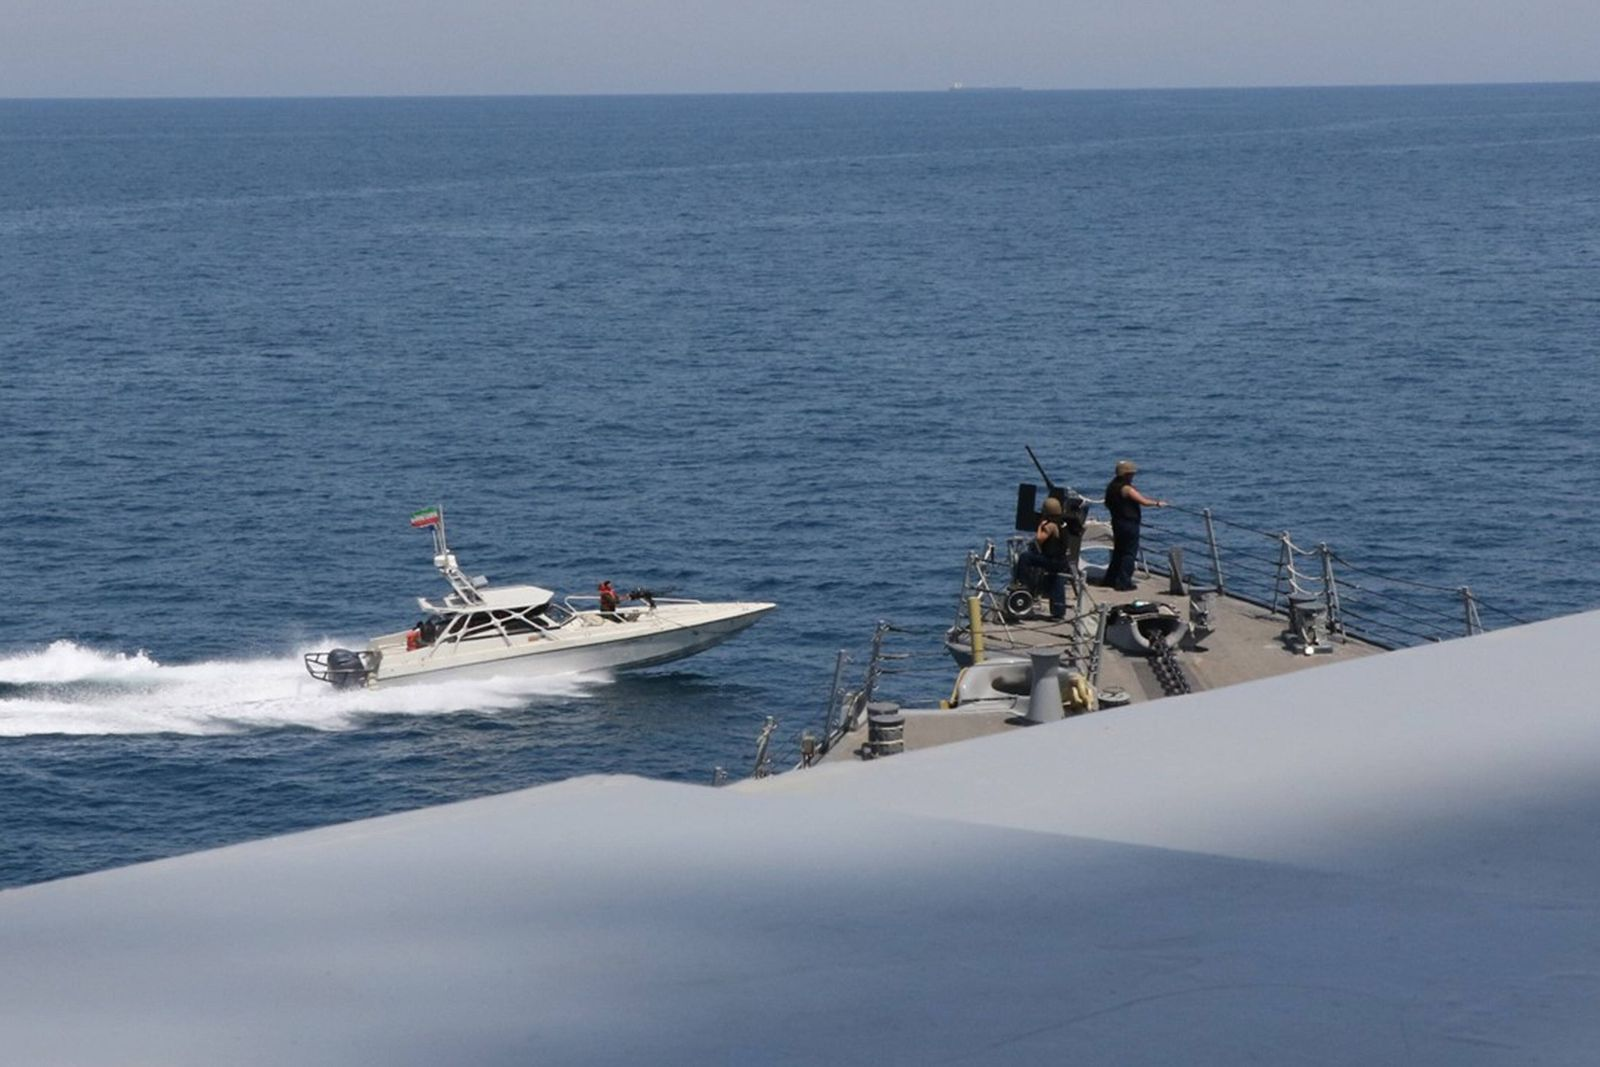 Iranian Islamic Revolutionary Guard Corps Navy (IRGCN) vessels conducted unsafe and unprofessional actions against U.S.